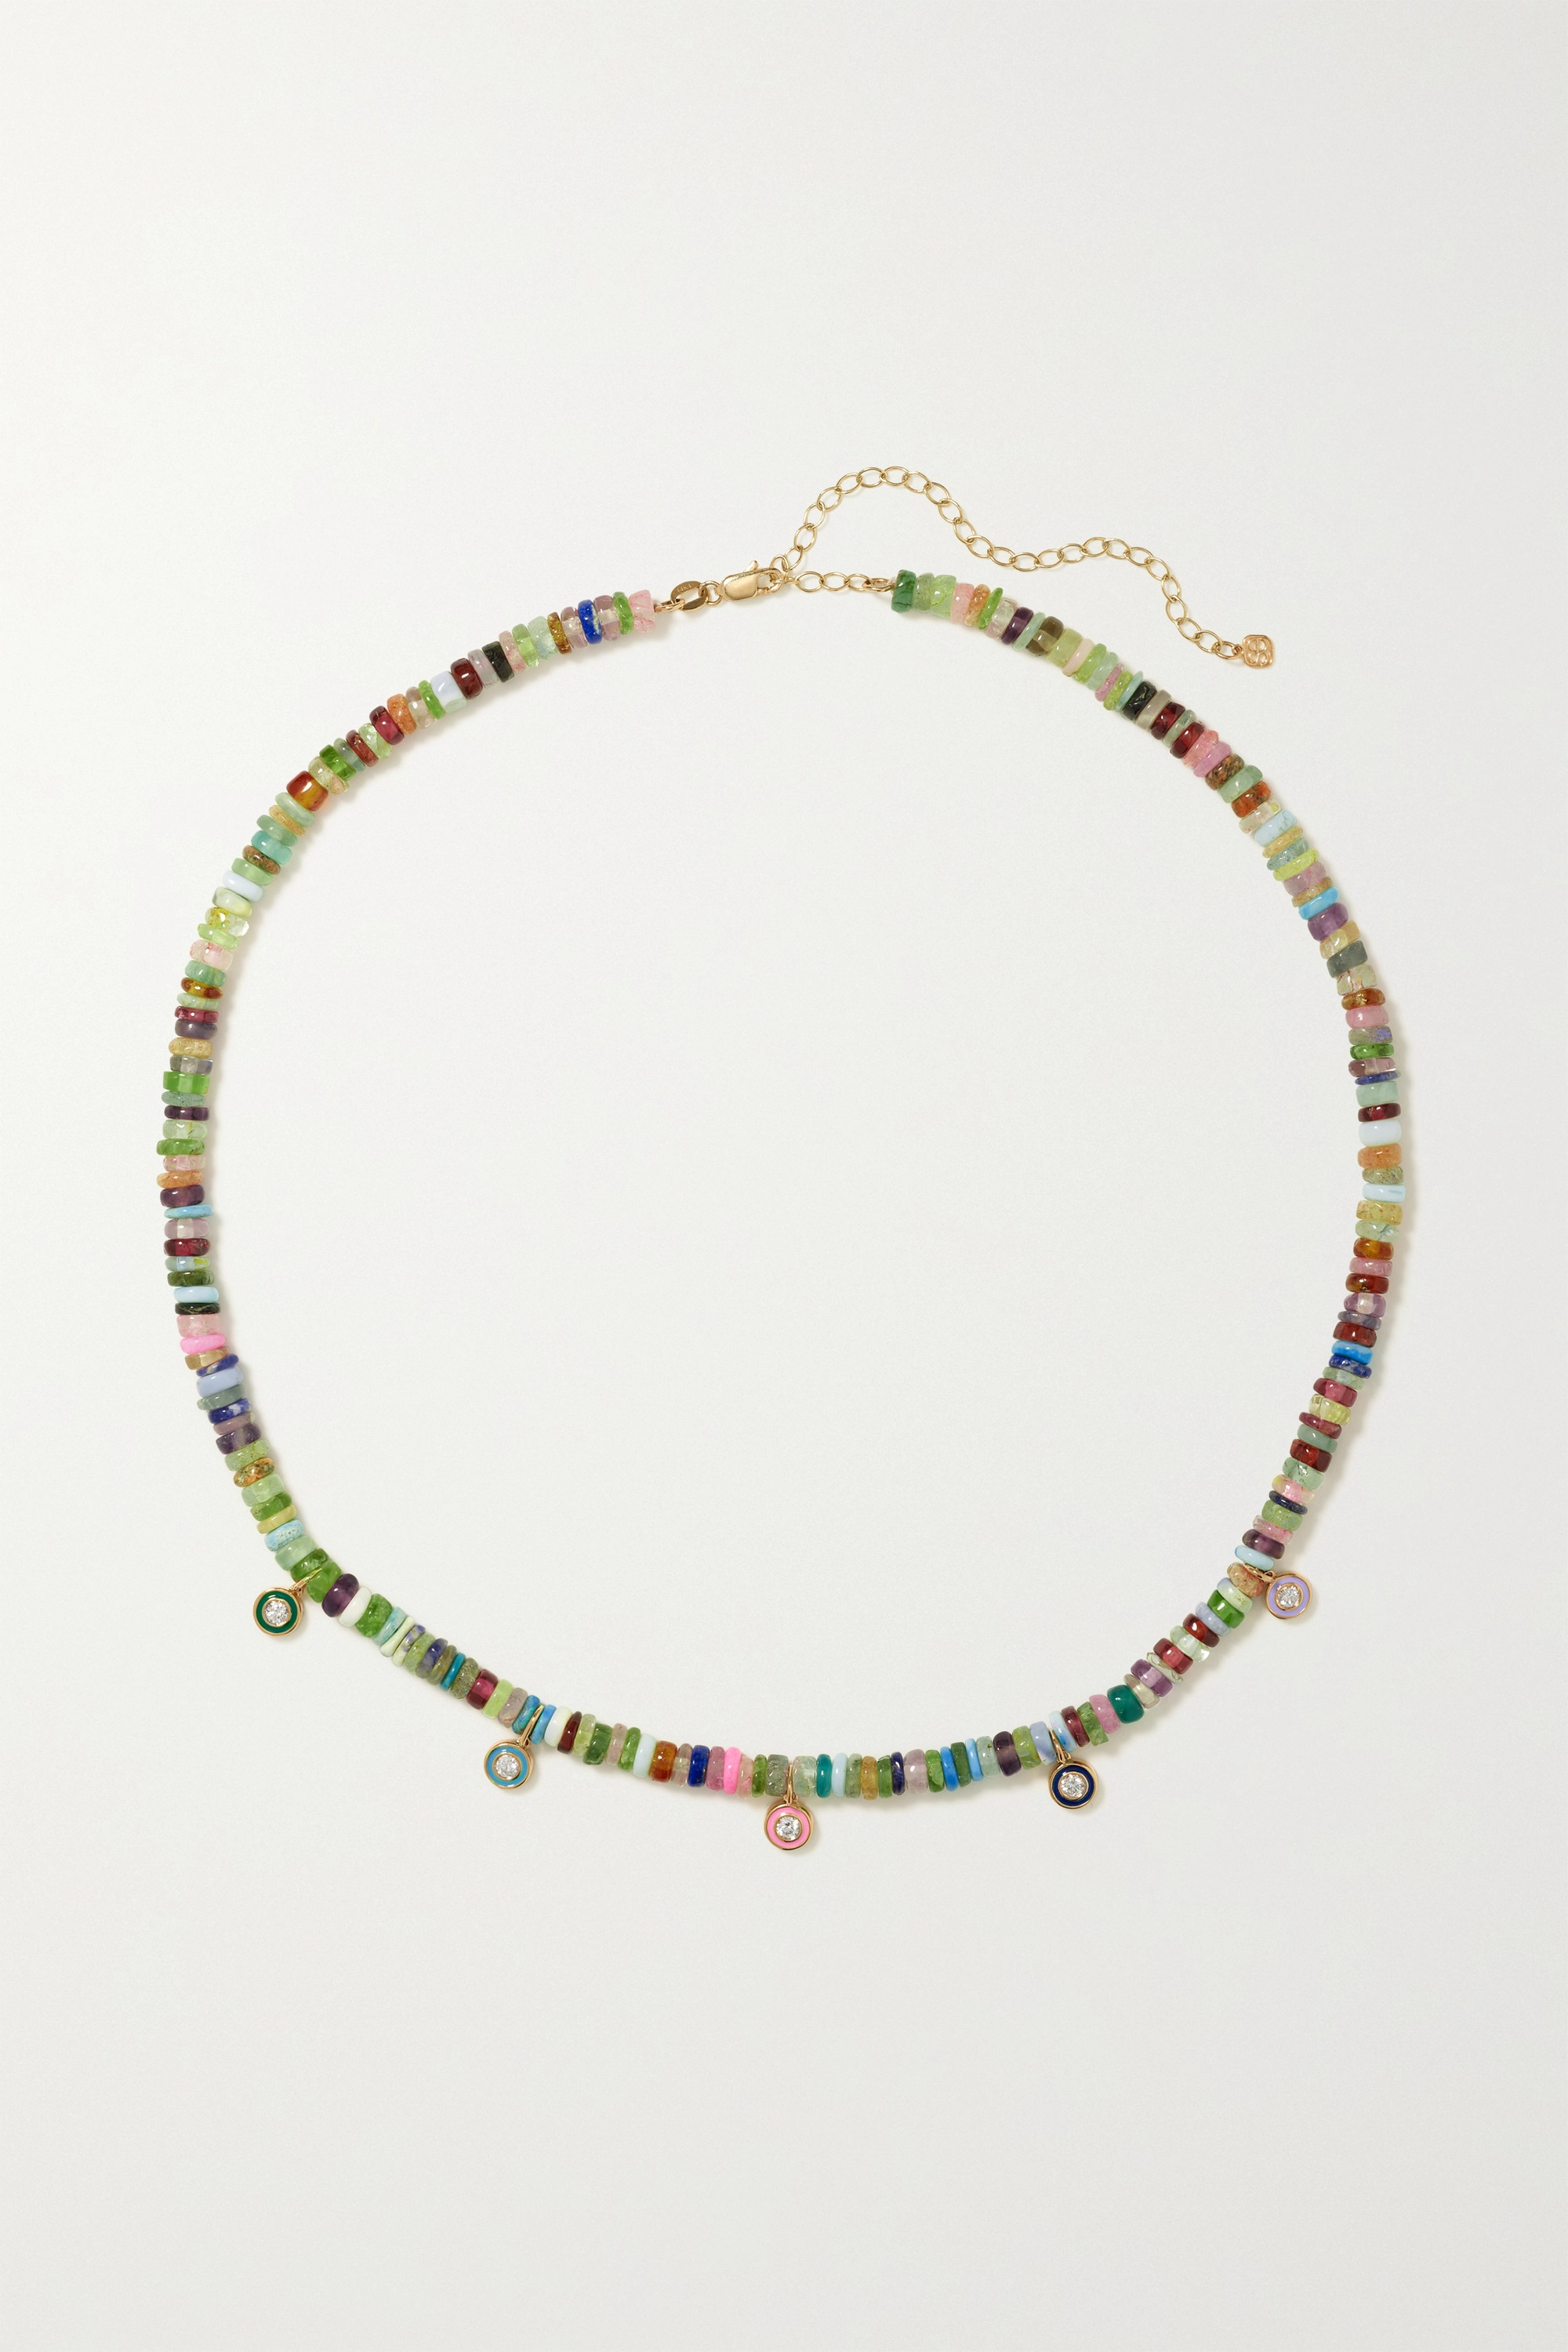 Sydney Evan - 14-karat gold, multi-stone and enamel necklace